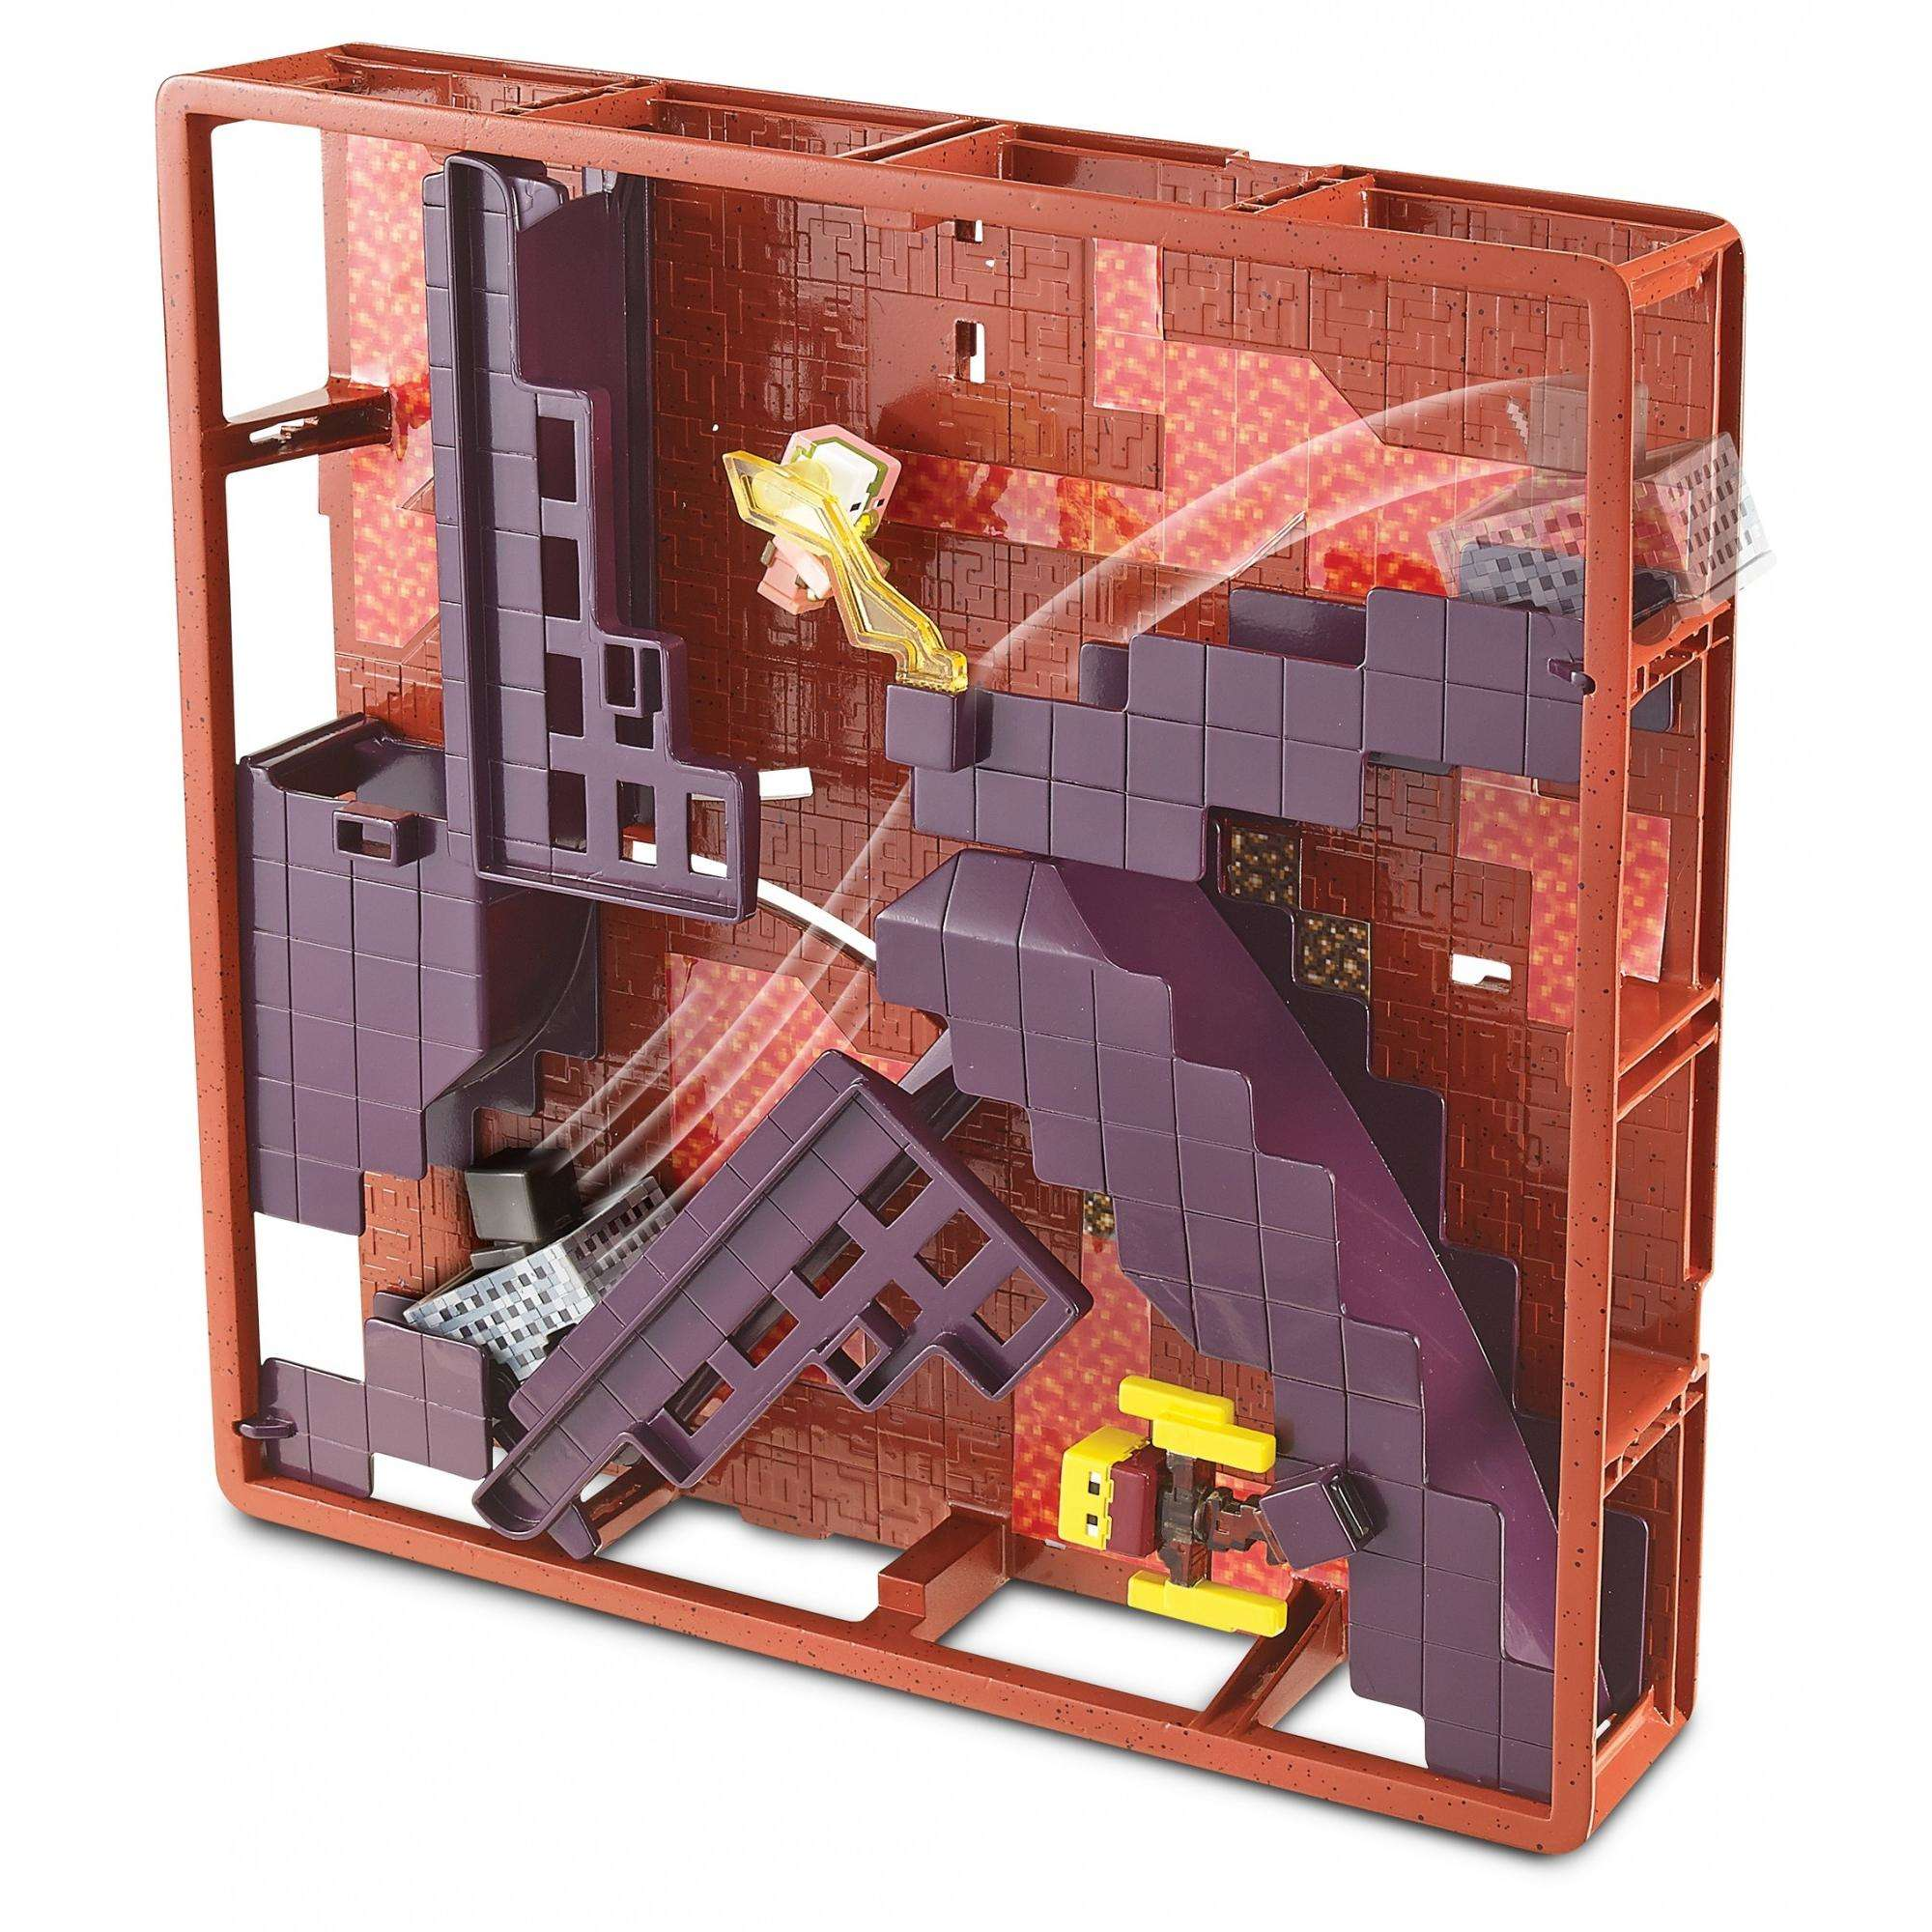 Hot Wheels Minecraft Track Blocks Nether Fortress Play Set by Mattel